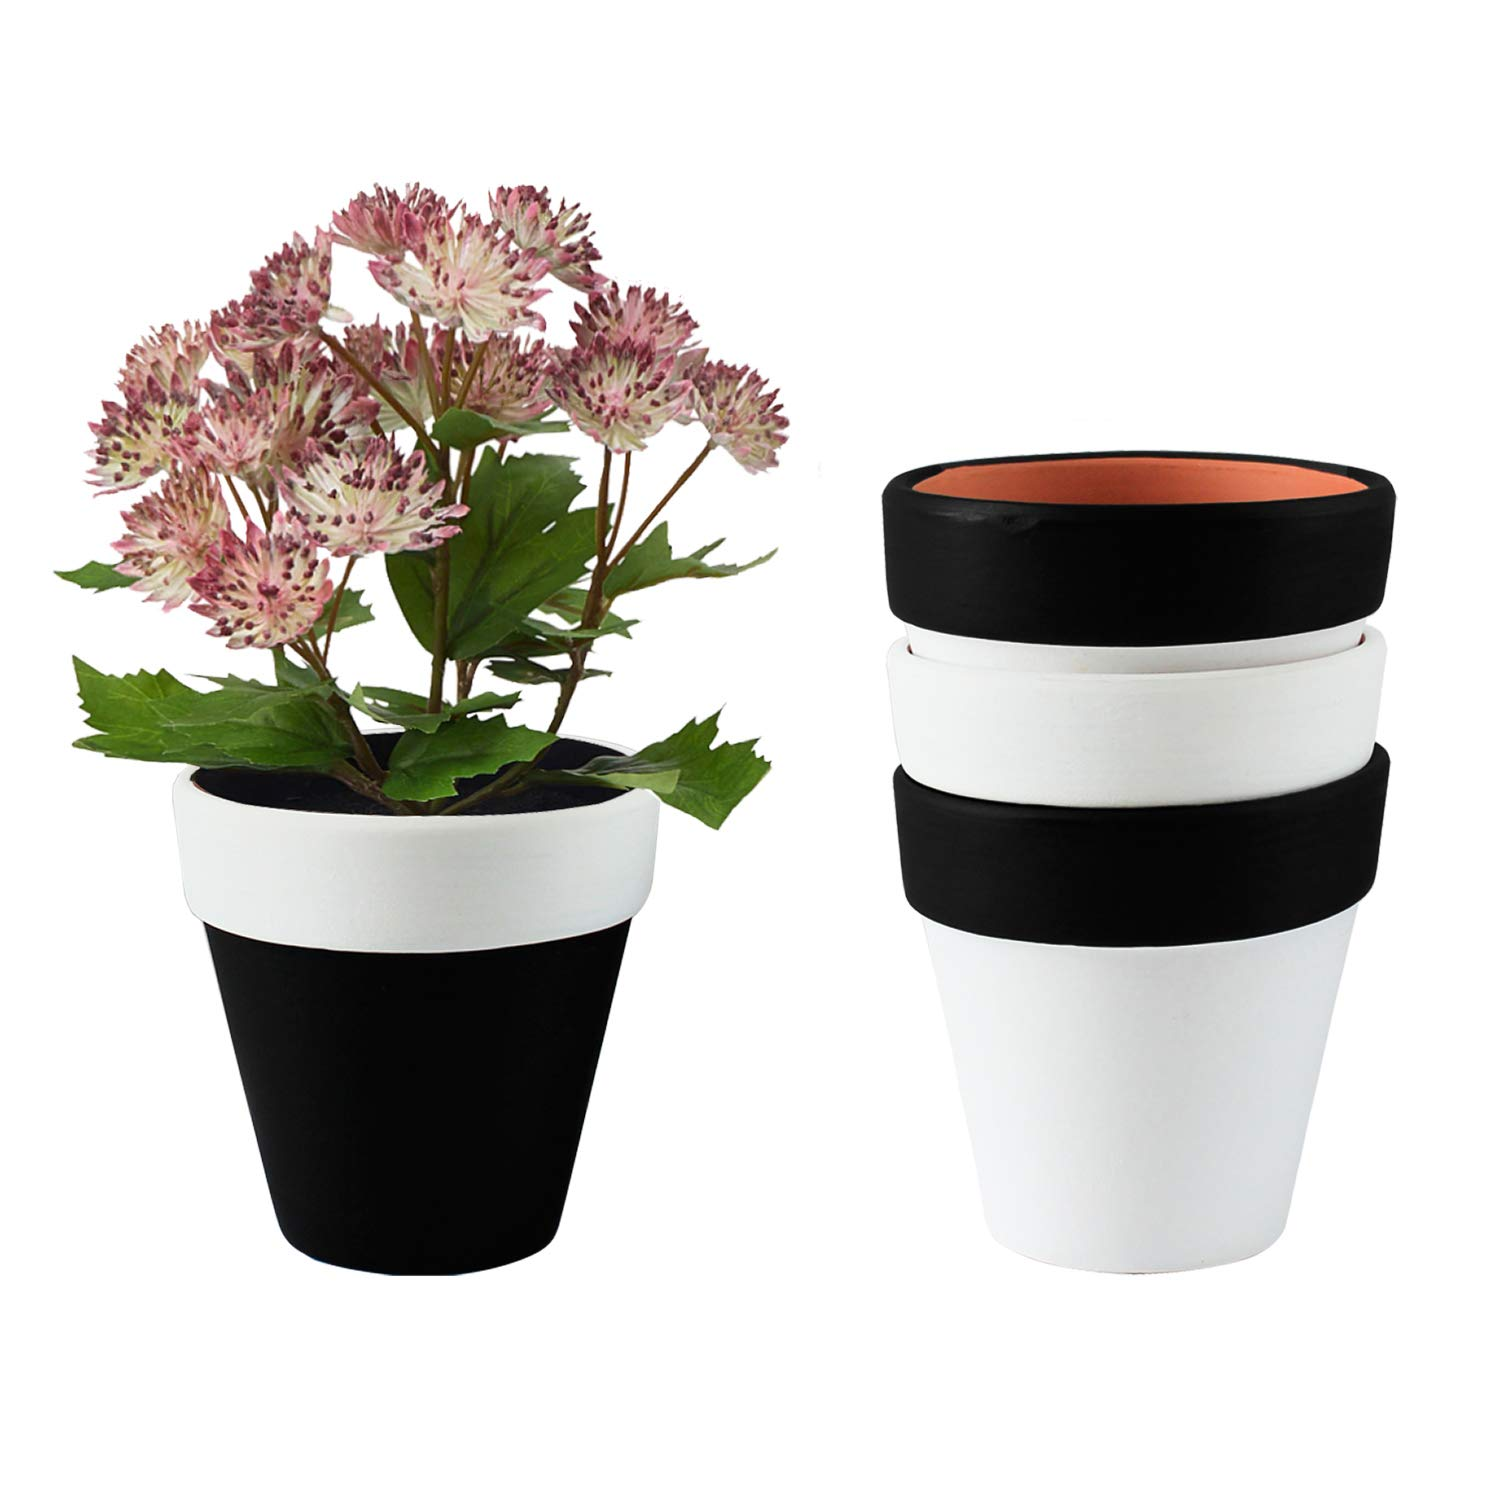 Plant Pots, Rosoli 3.55 Inch Clay Planters Set of 4 Flower Plant Pots Indoor Gardening Pots with Drainage Hole for Succulents, Flowers, African Violets, Cactus, Herbs and All House Plants